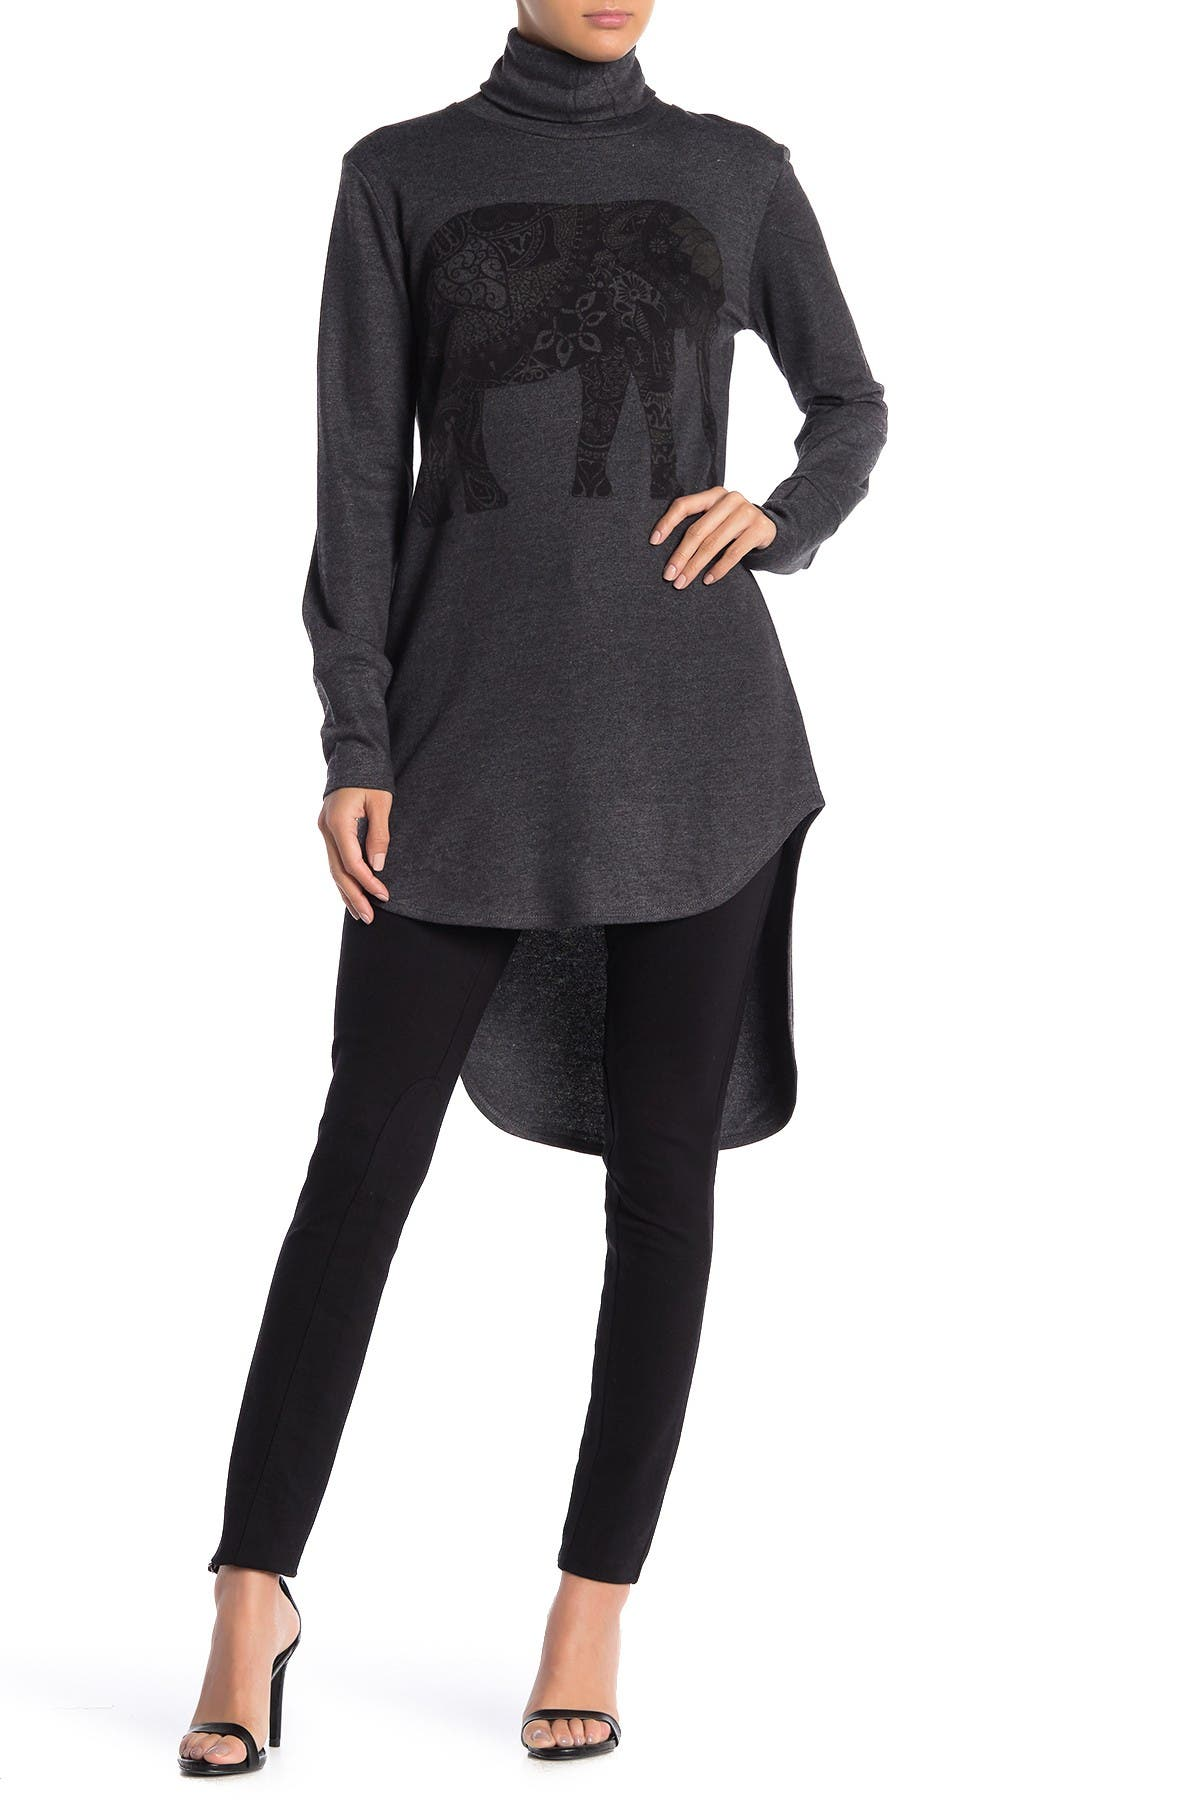 Image of Go Couture Turtleneck High/Low Hem Tunic Sweater